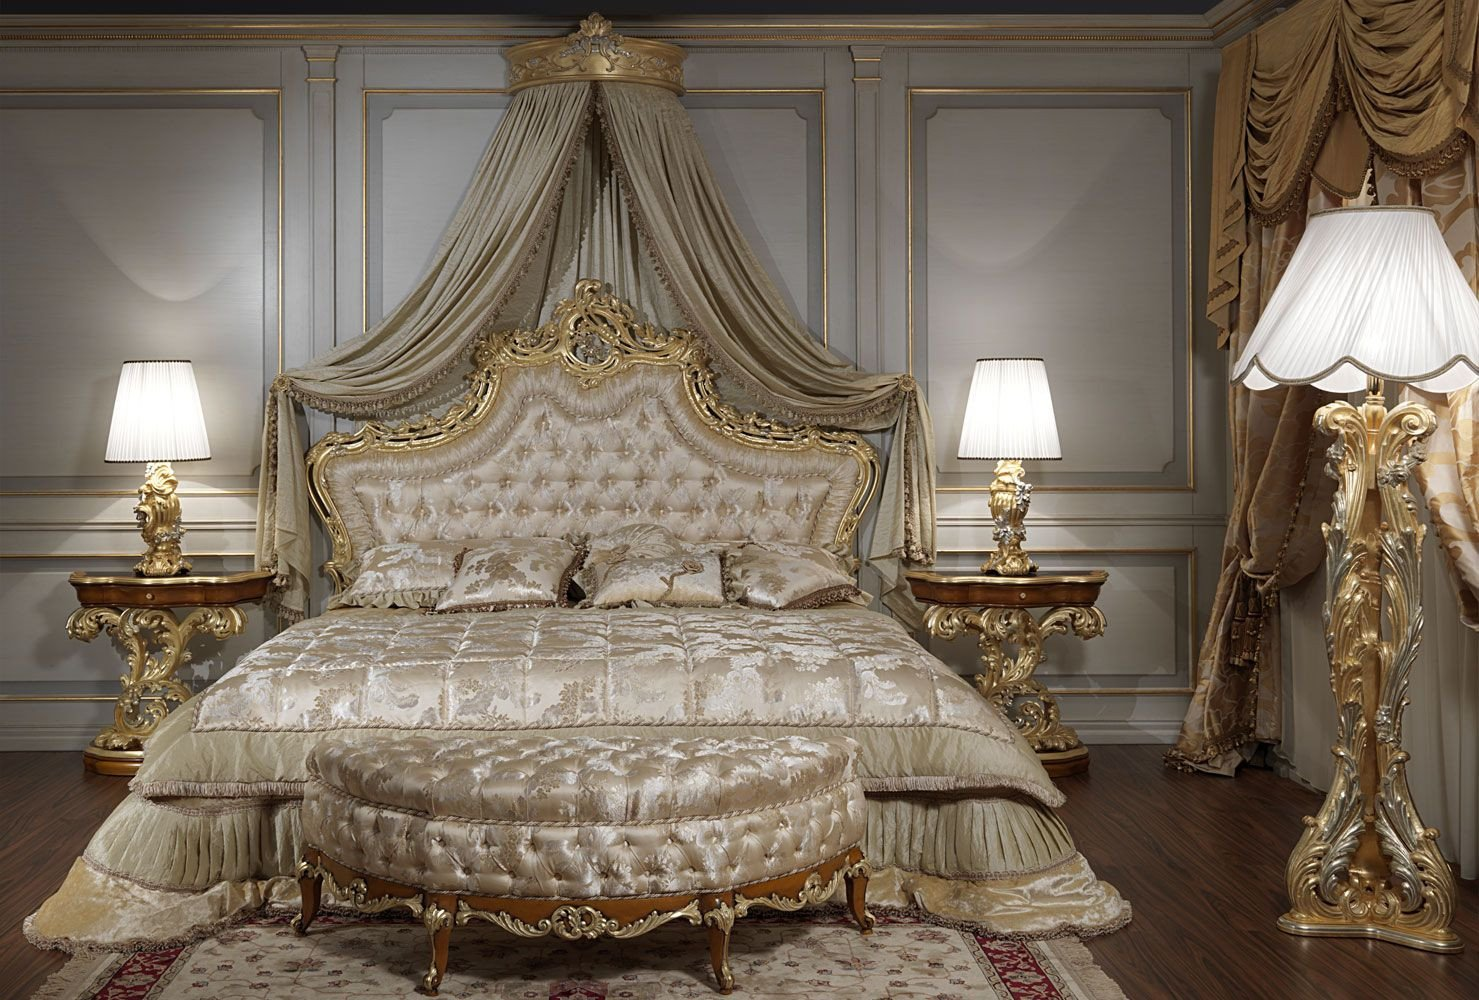 Classic Italian Bedroom Furniture Unique Luxury Classic Bedroom Roman Baroque Style Of the